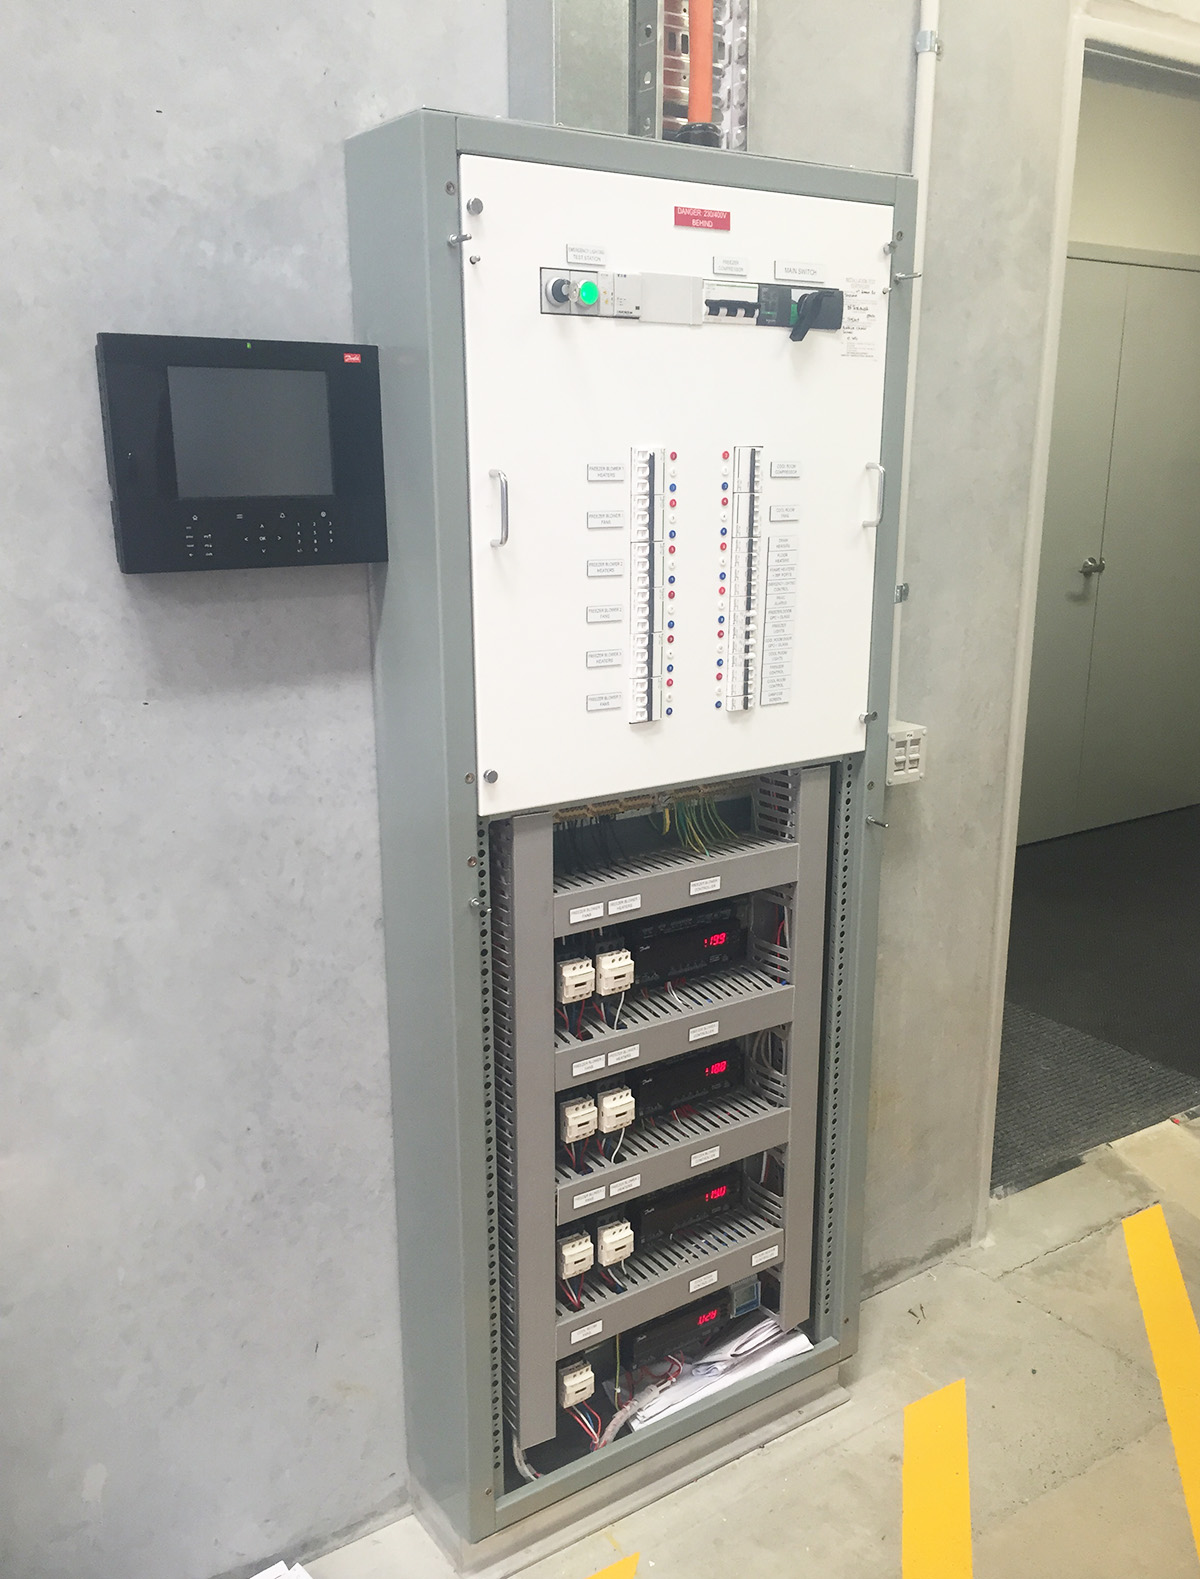 Large_Storage_Warehouse_Freezer_Switchboard.jpg